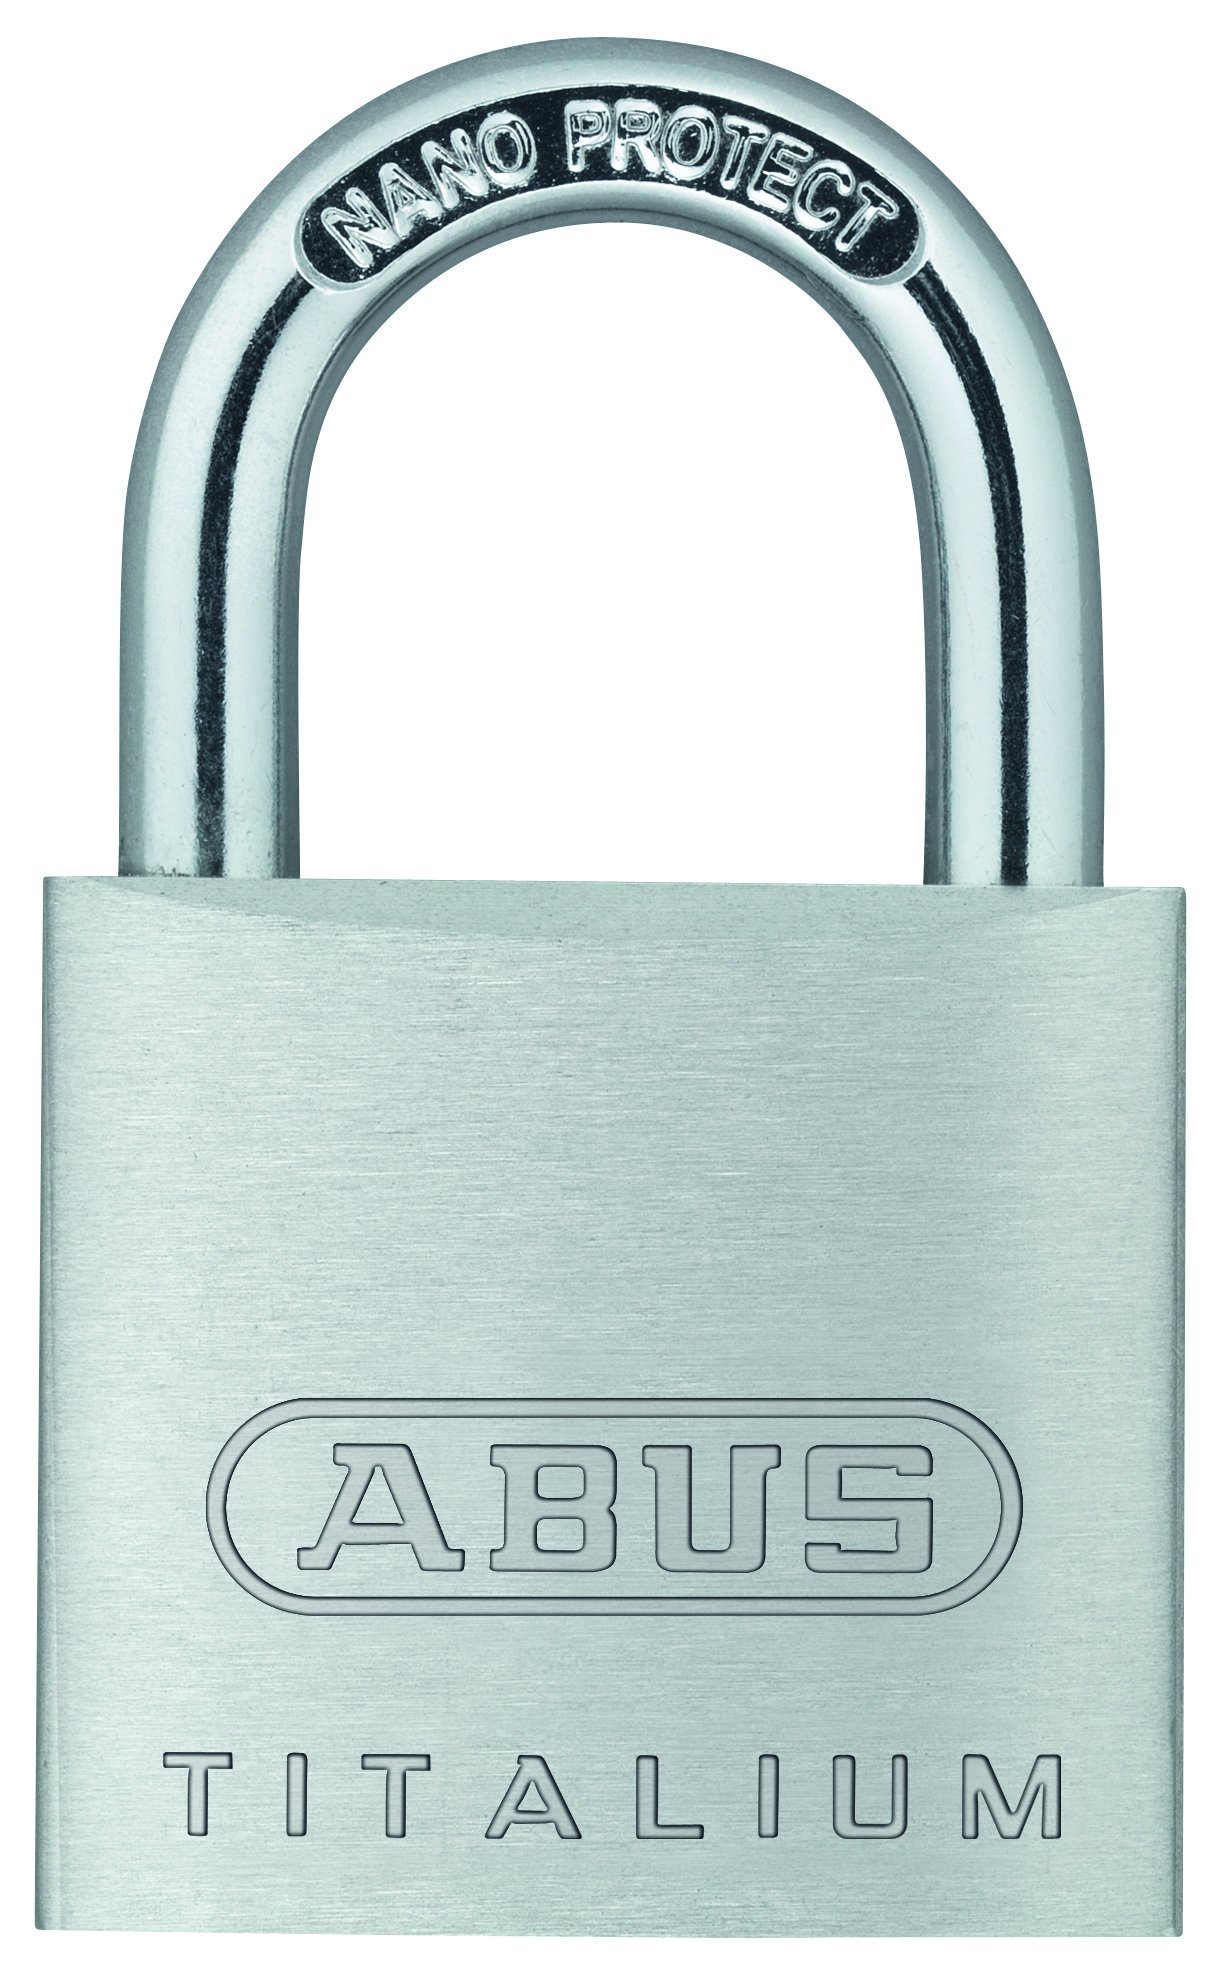 ABUS 64TI/30 C KD Titalium Aluminum Alloy Keyed Different Padlock 1-1/4-Inch with 3/16-Inch Diameter Nano Protect Steel Shackle